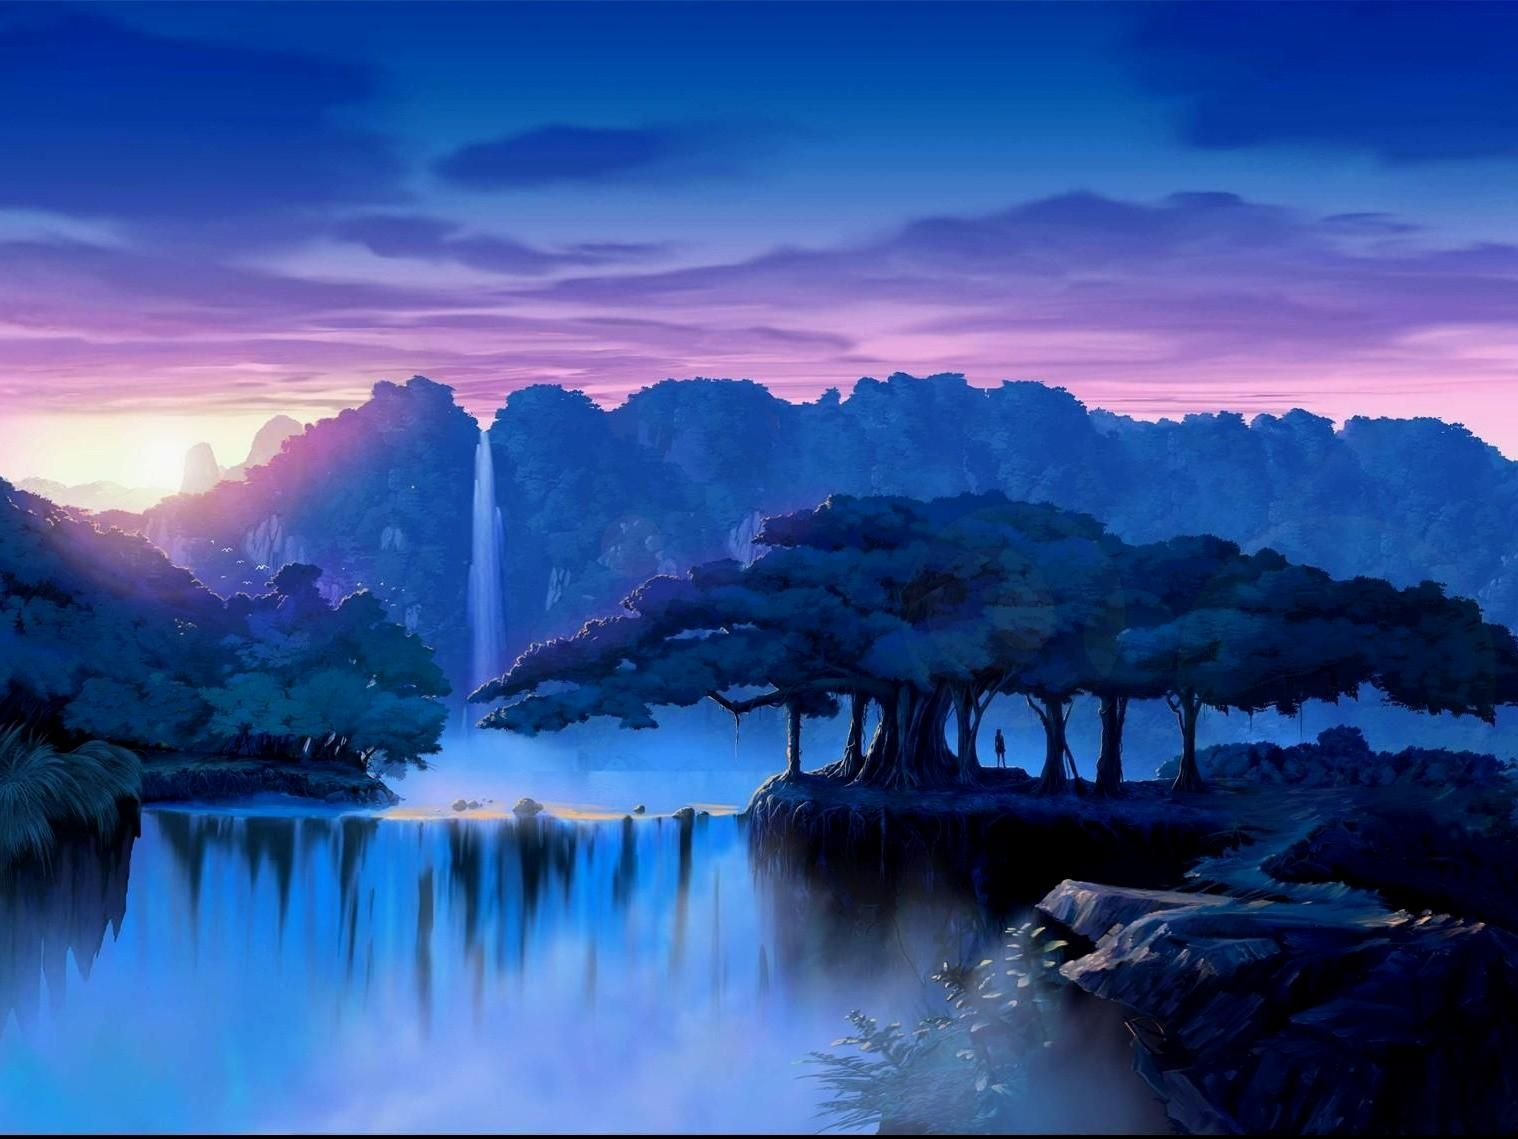 Fantasy landscape wallpaper fantasy landscapes rooms for Landscape pictures